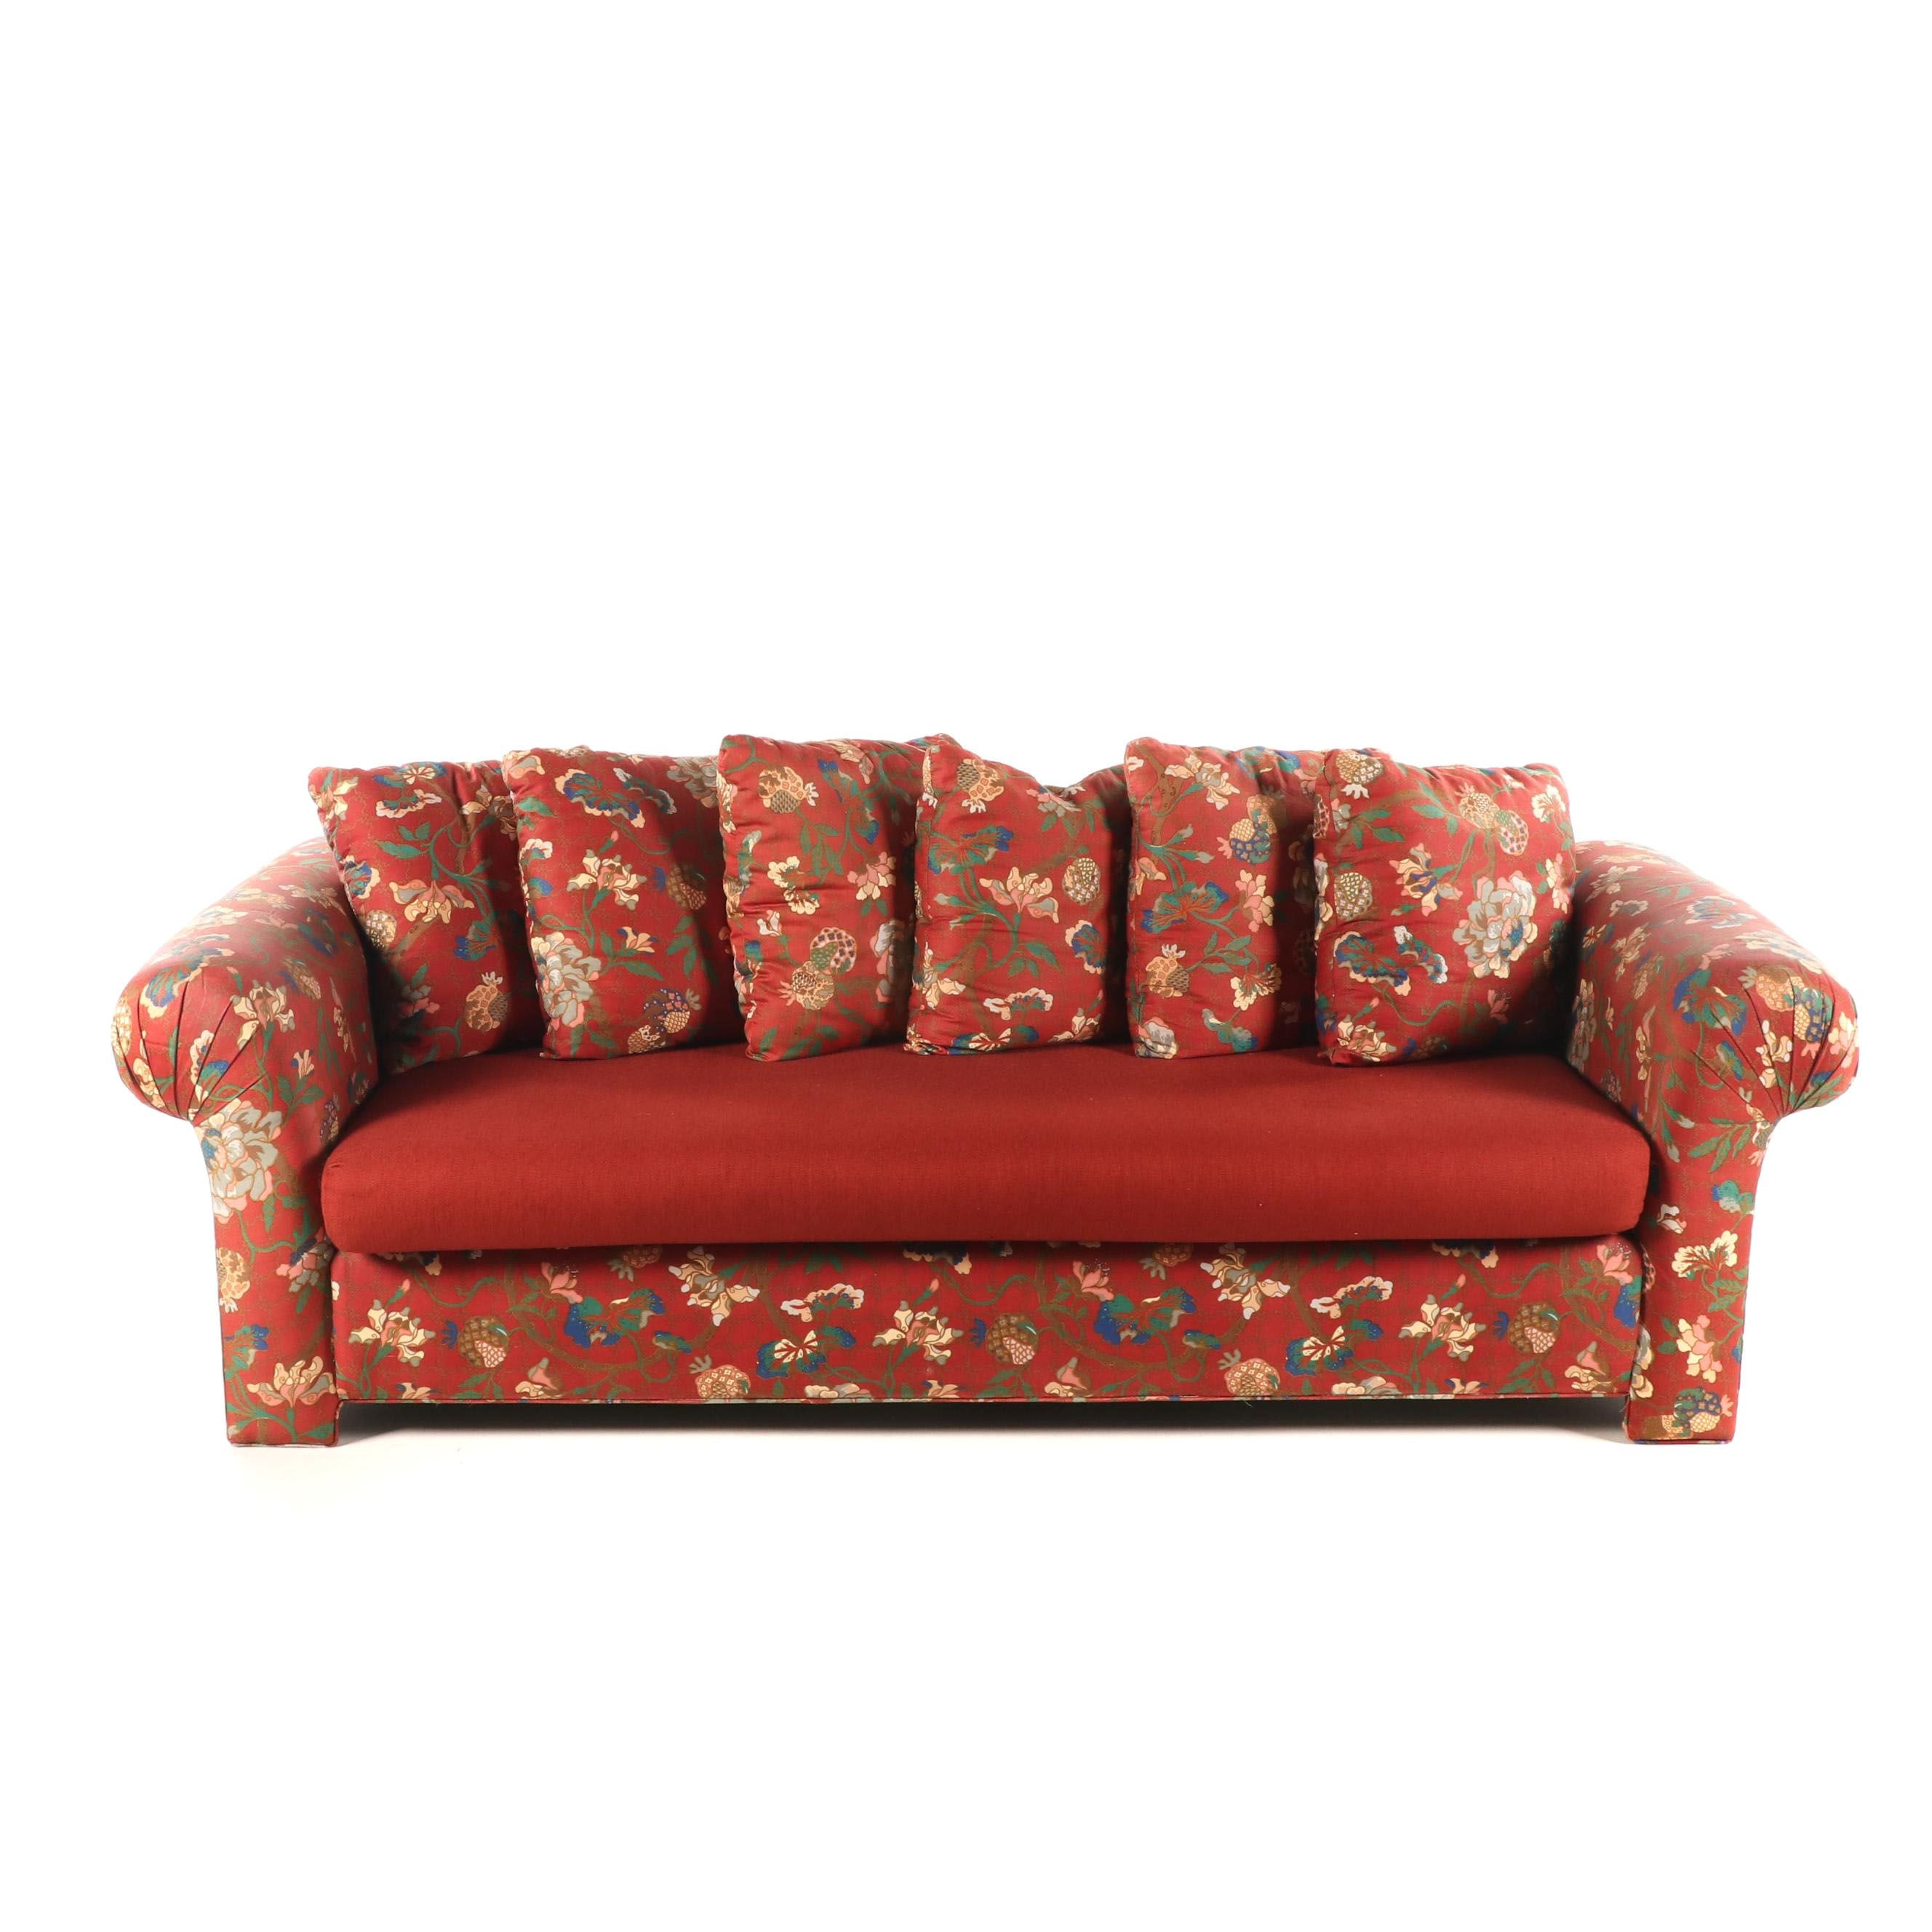 Floral Print Upholstered Sofa by Stratford, Late 20th Century